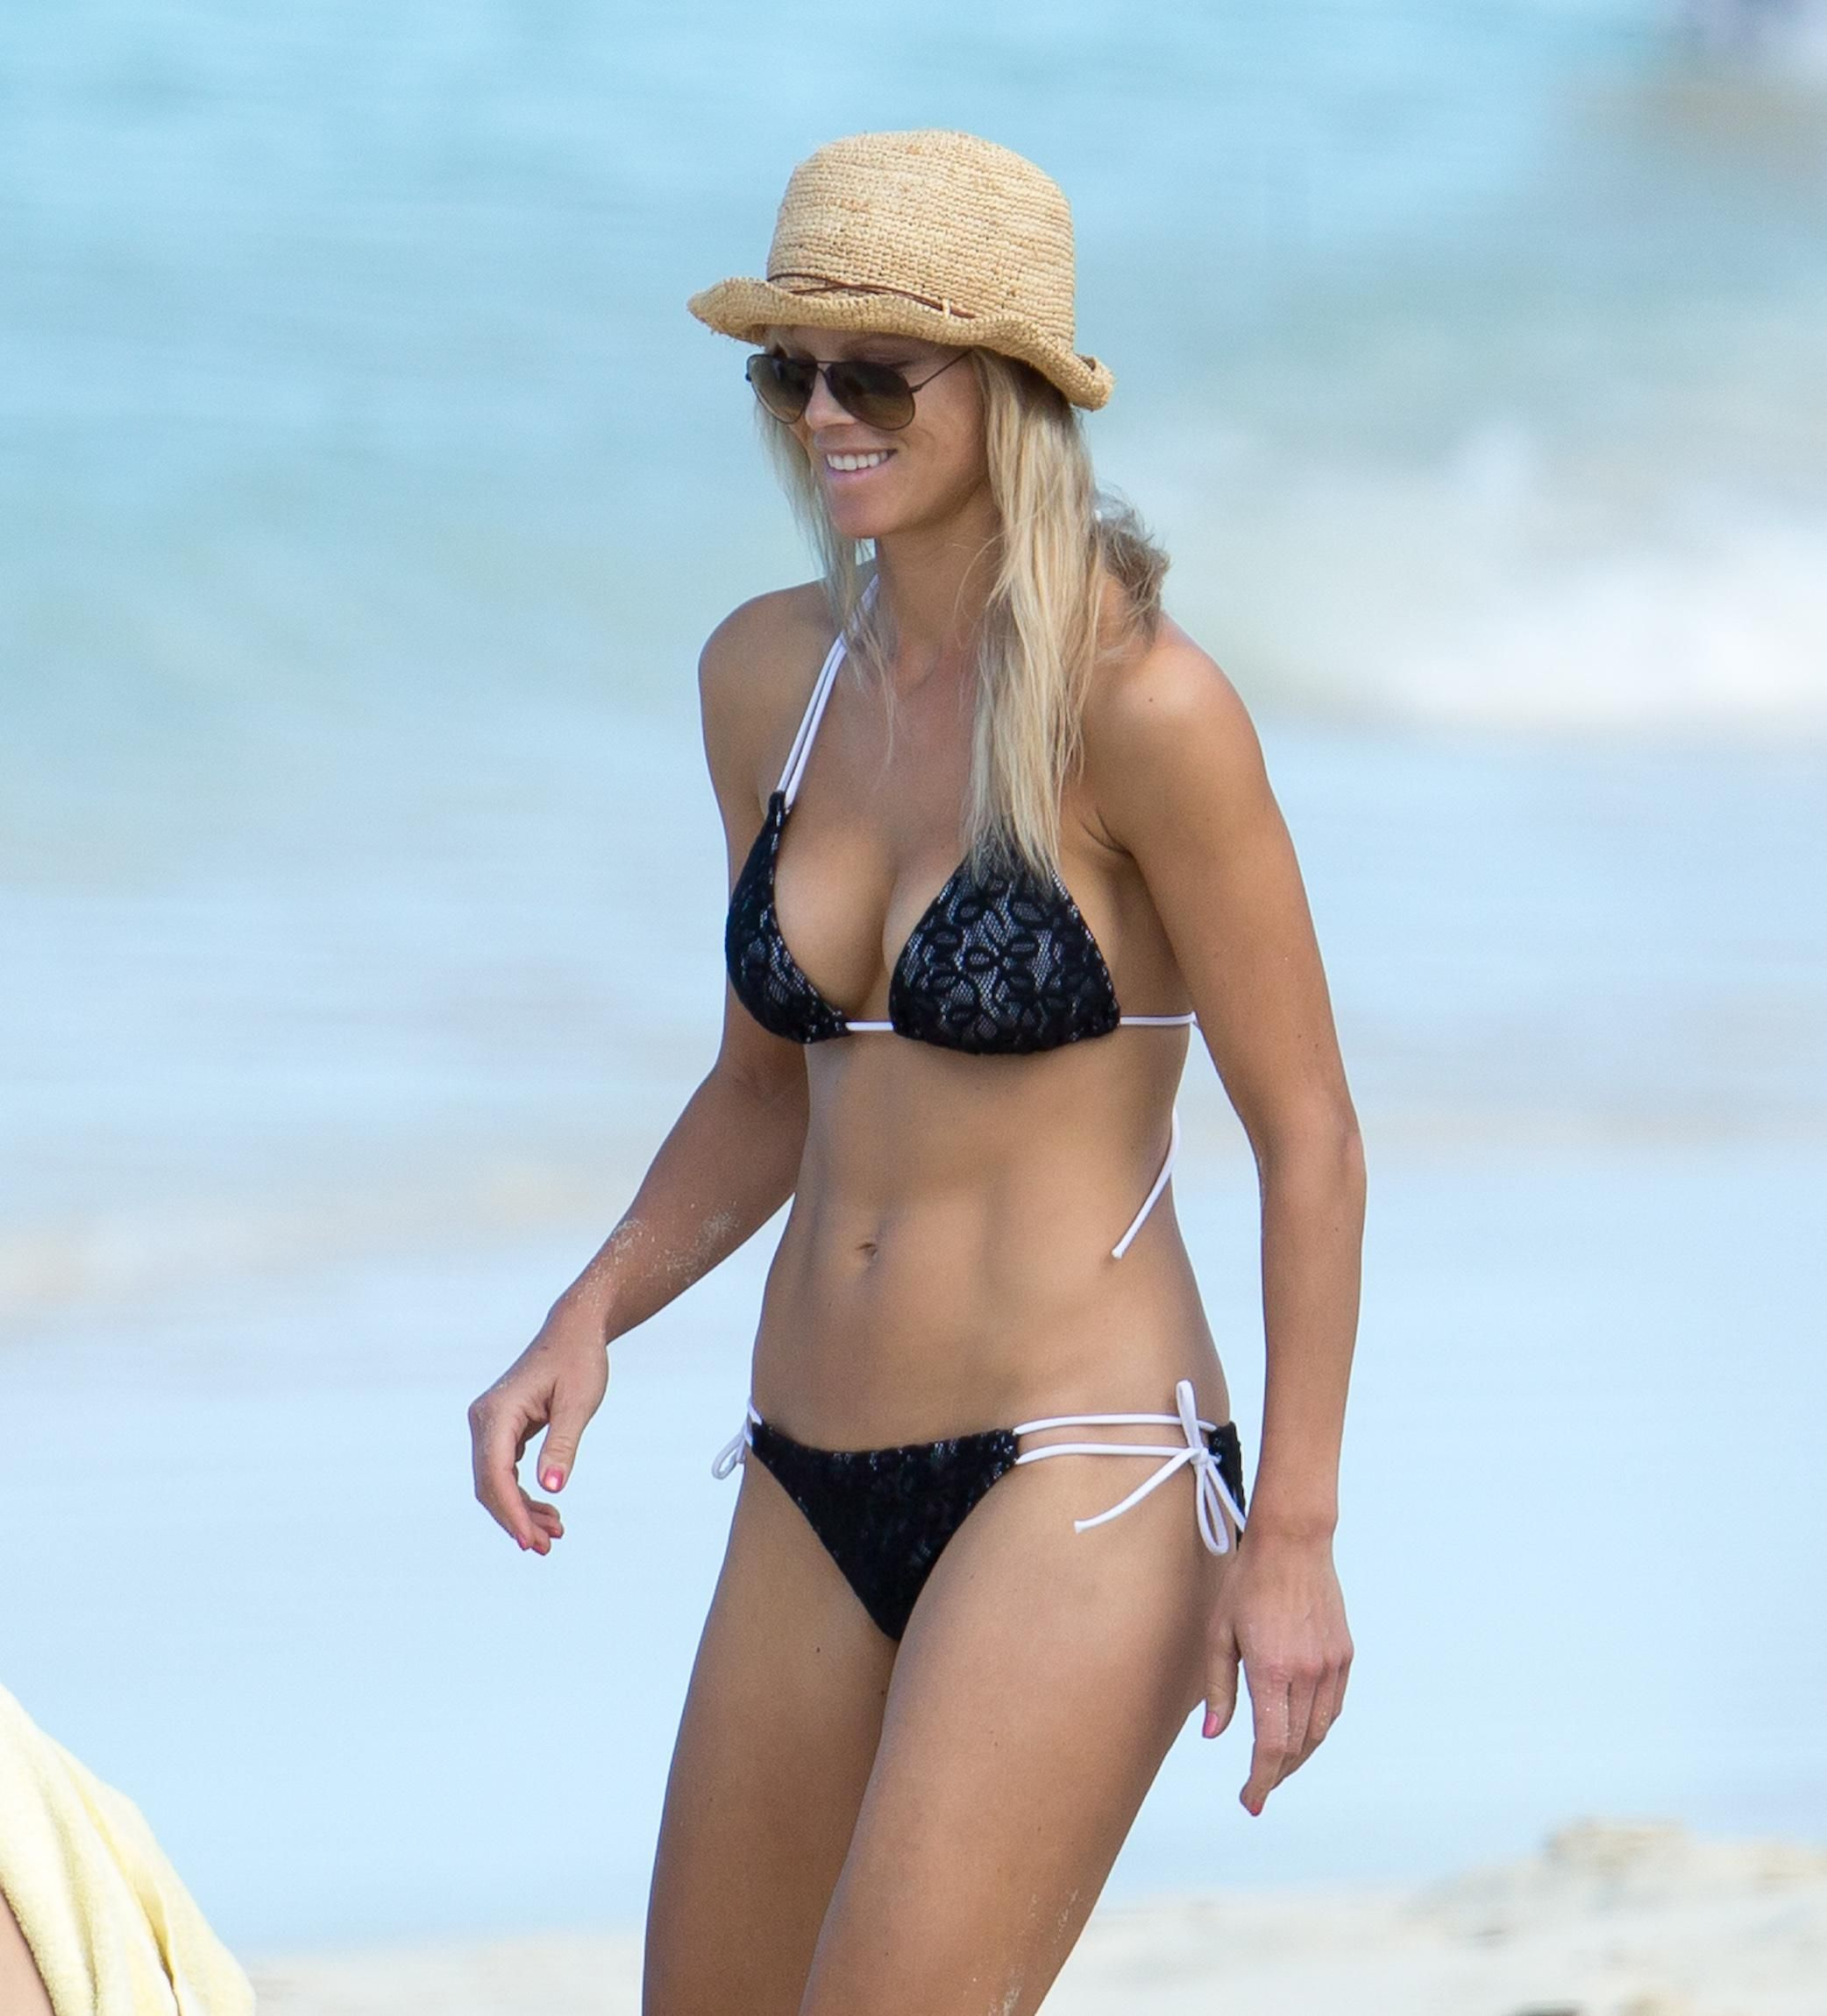 Designer of elin nordegren white bikini photo 159